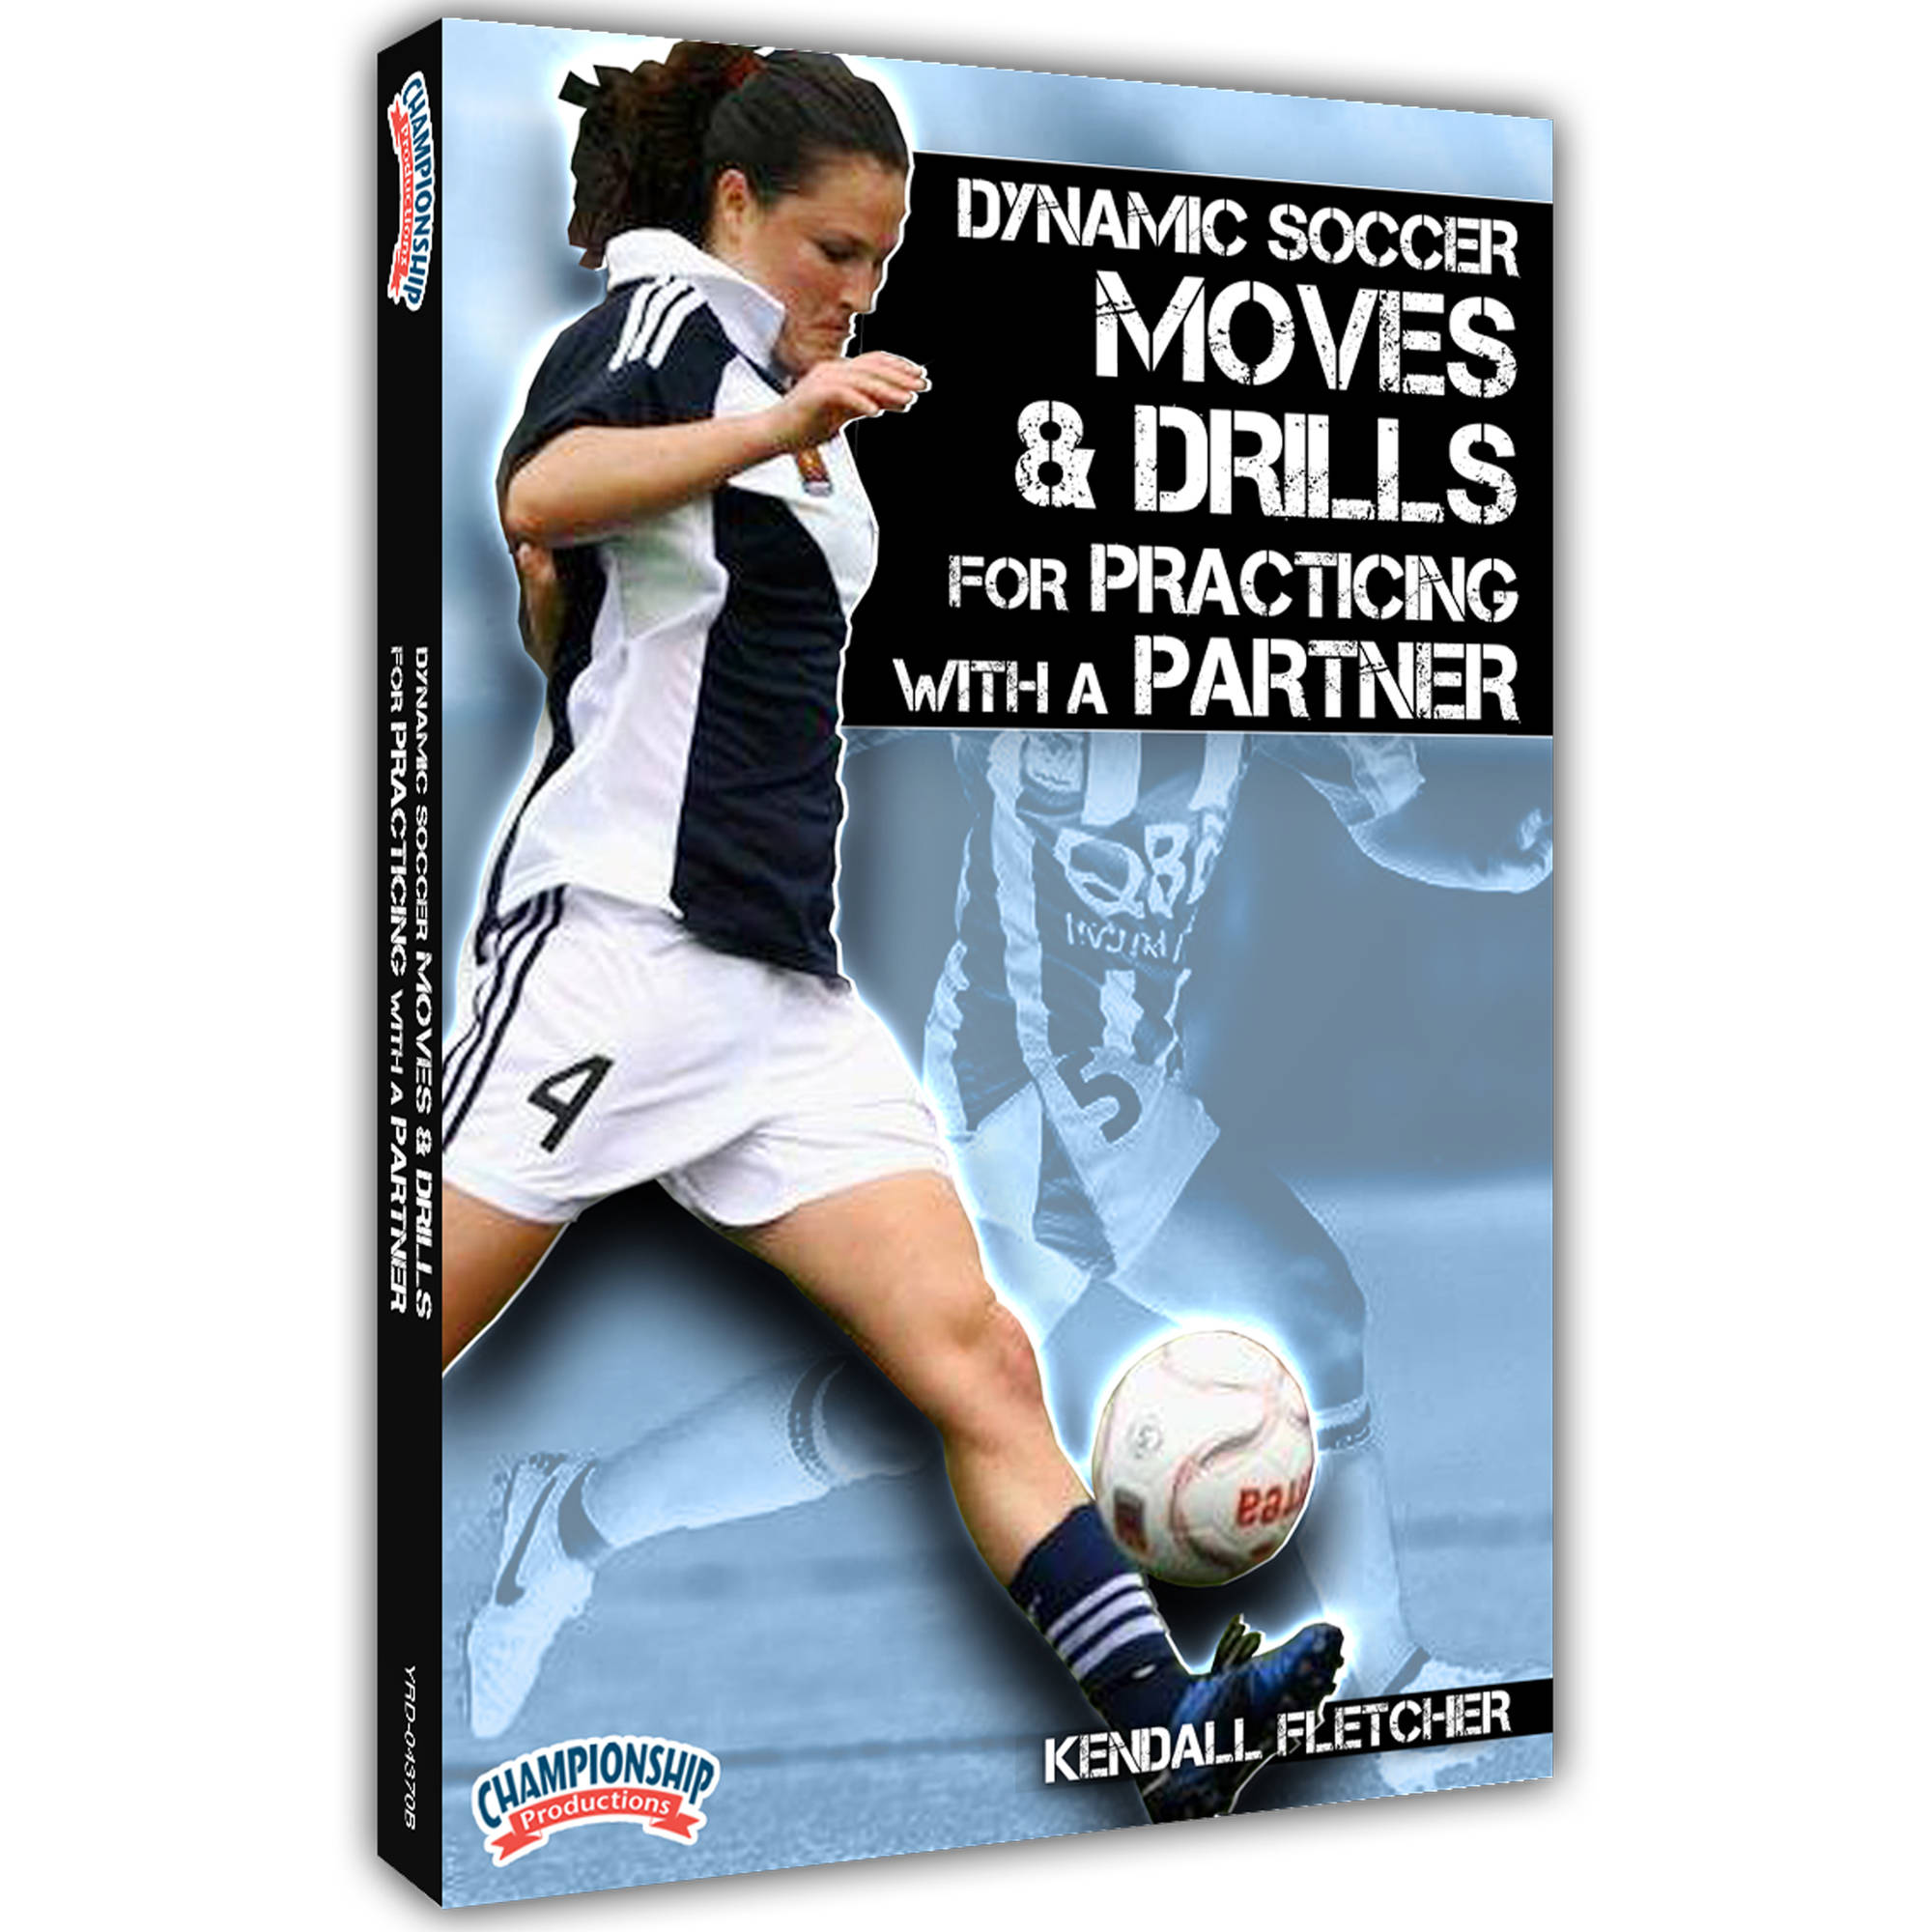 Dynamic Soccer Moves and Drills for Practicing with a Partner! DVD